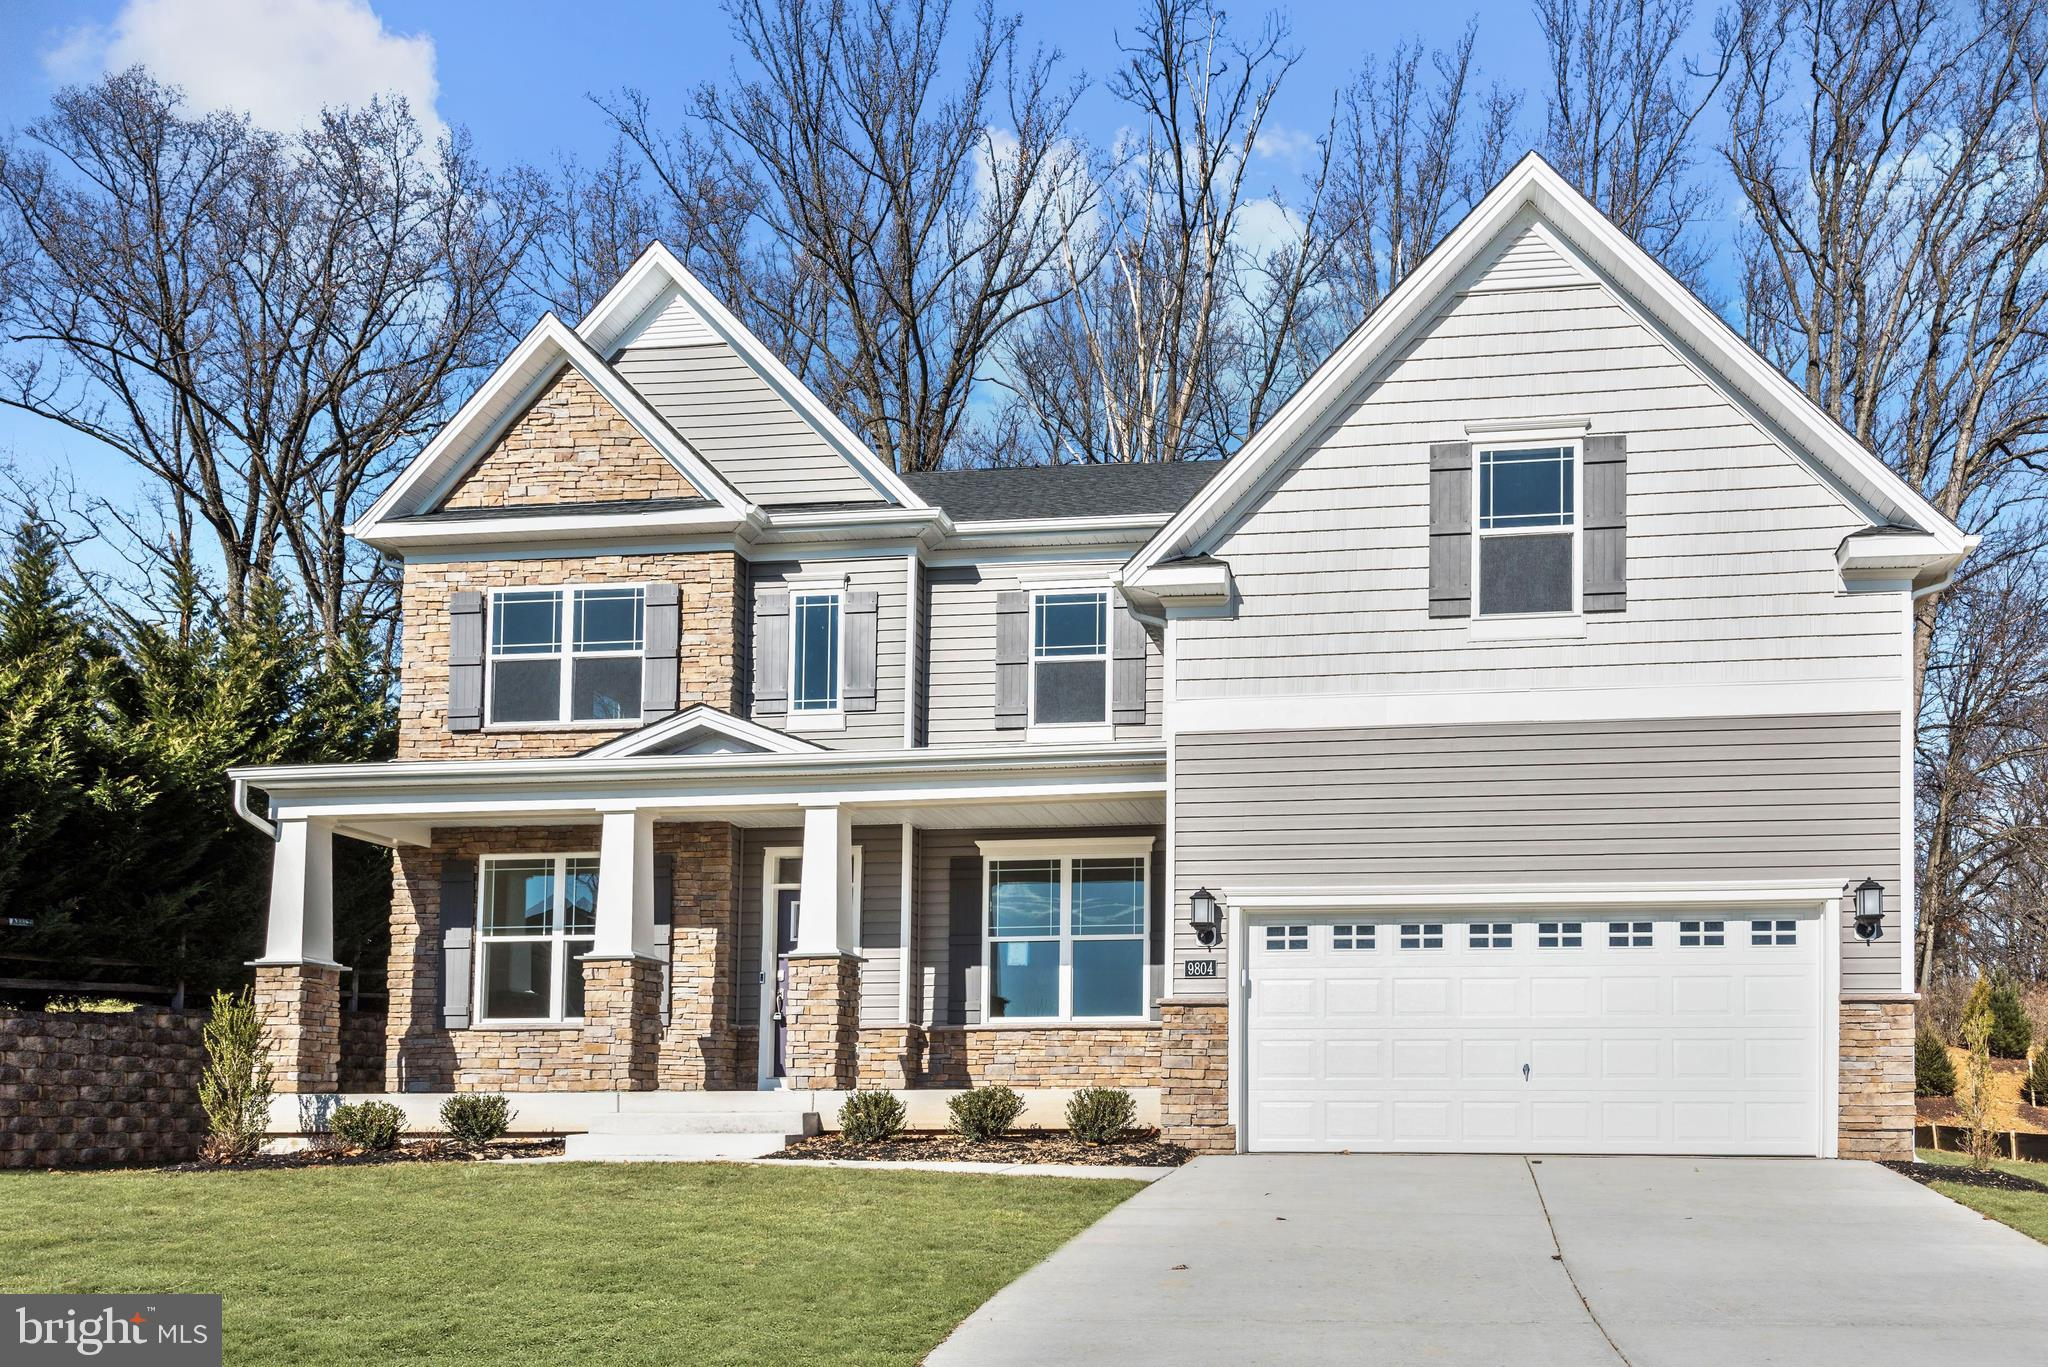 9804 PERRYLAND COURT, PERRY HALL, MD 21128